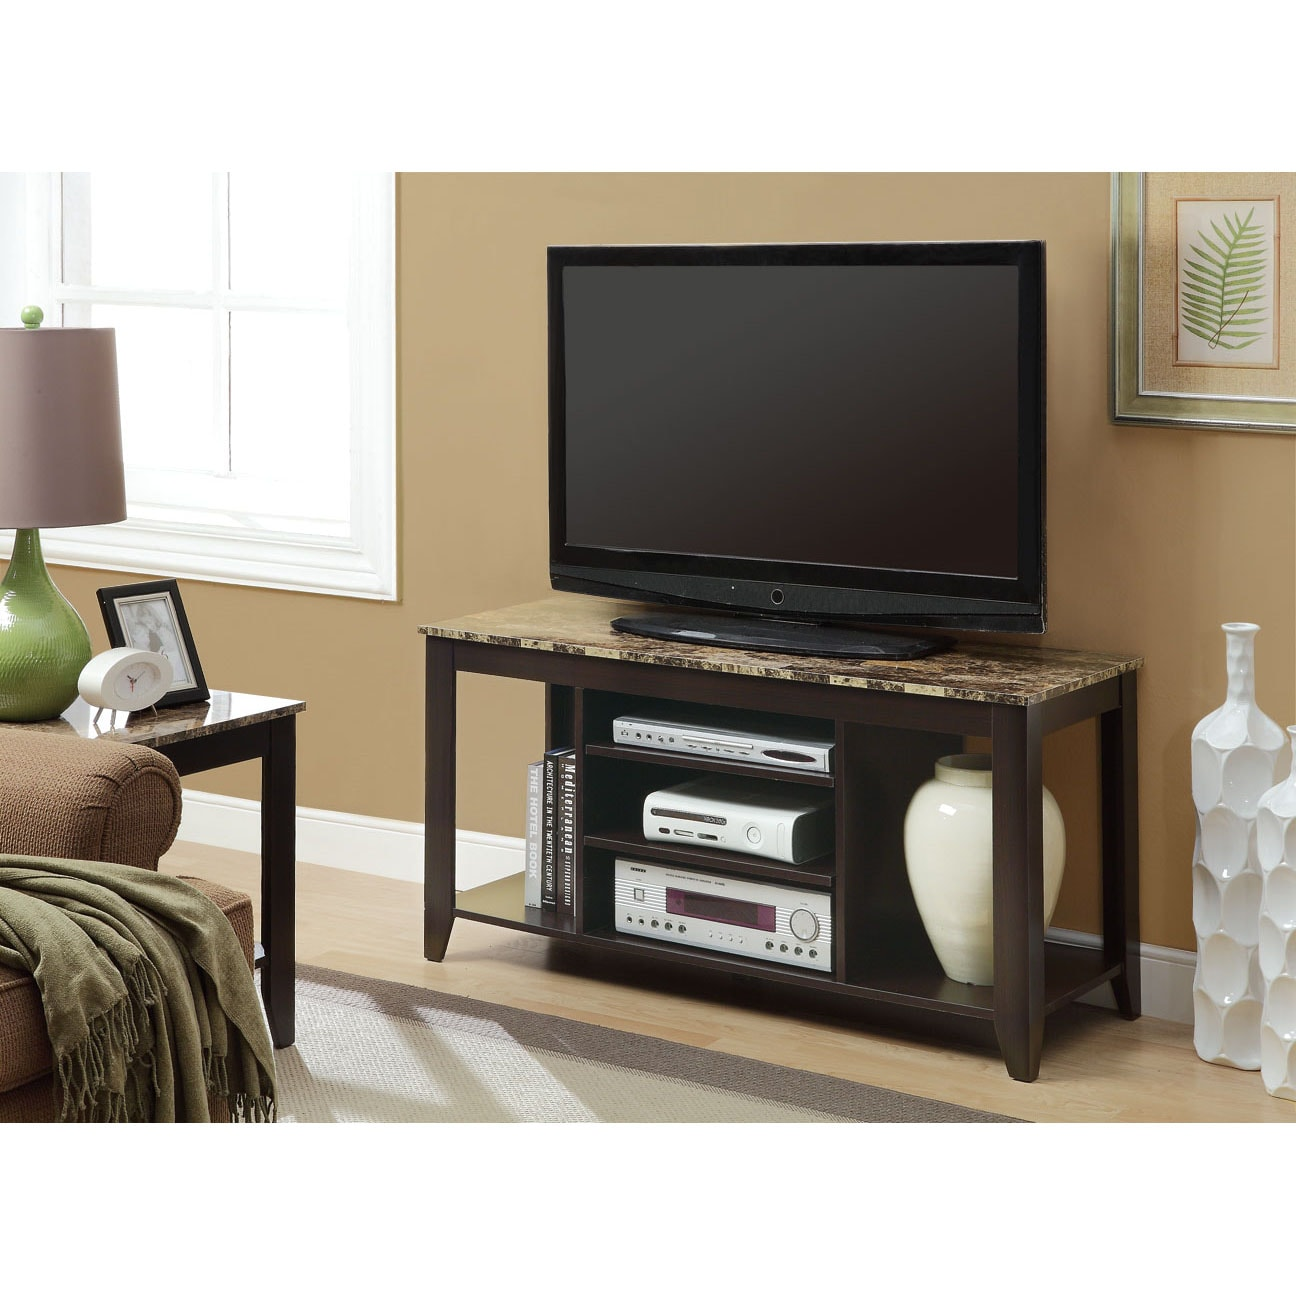 Cappuccino Marble Top 48L TV Console 14348527 Shopping Great Deals On